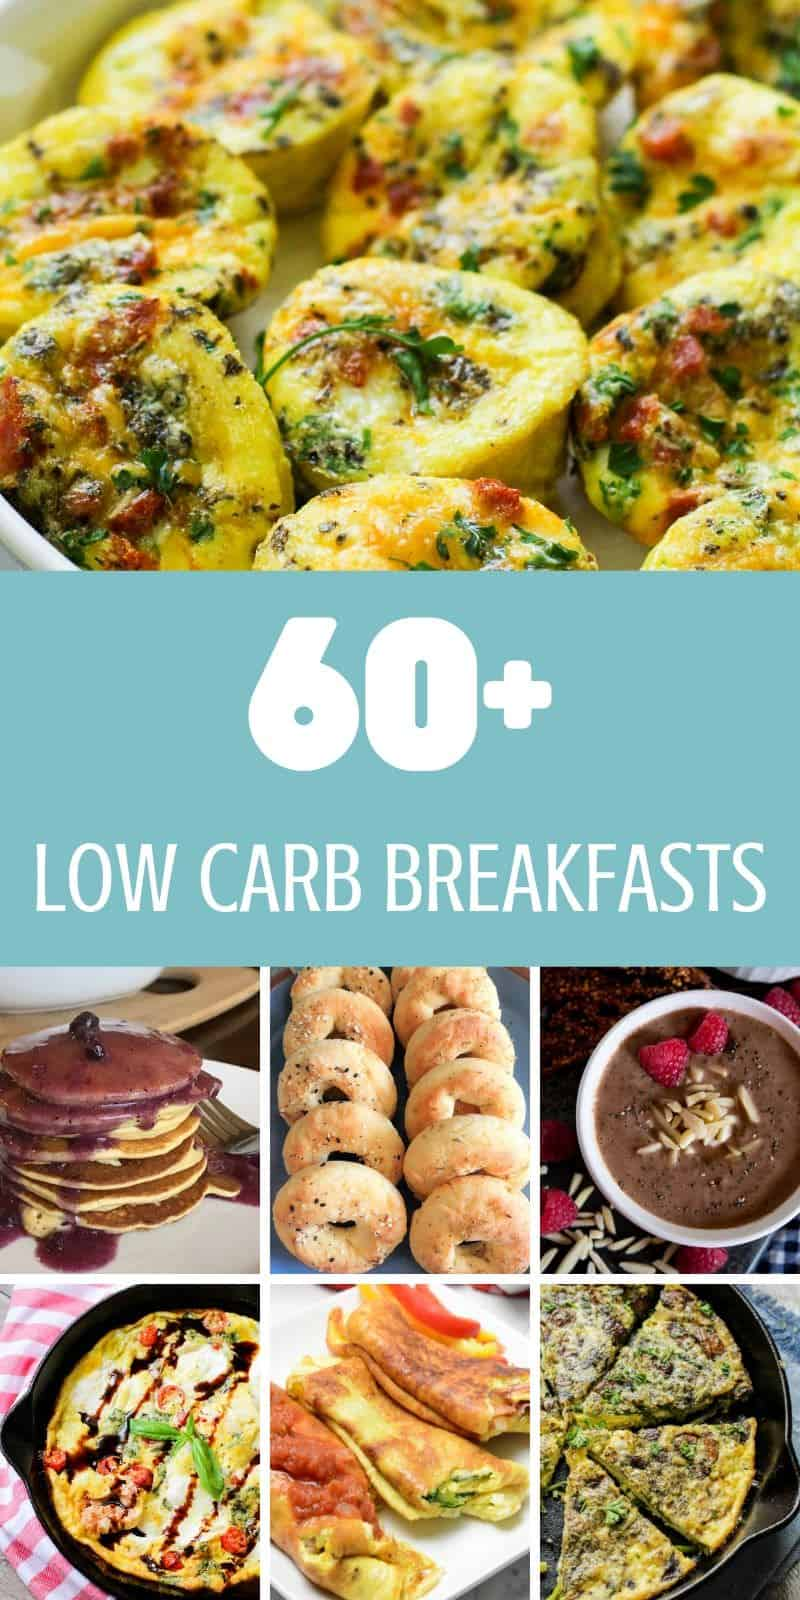 These 60+ low carb breakfast ideas for the keto diet are sure to start your mornings off on the right foot. Not only keto/low carb, but they are good too!